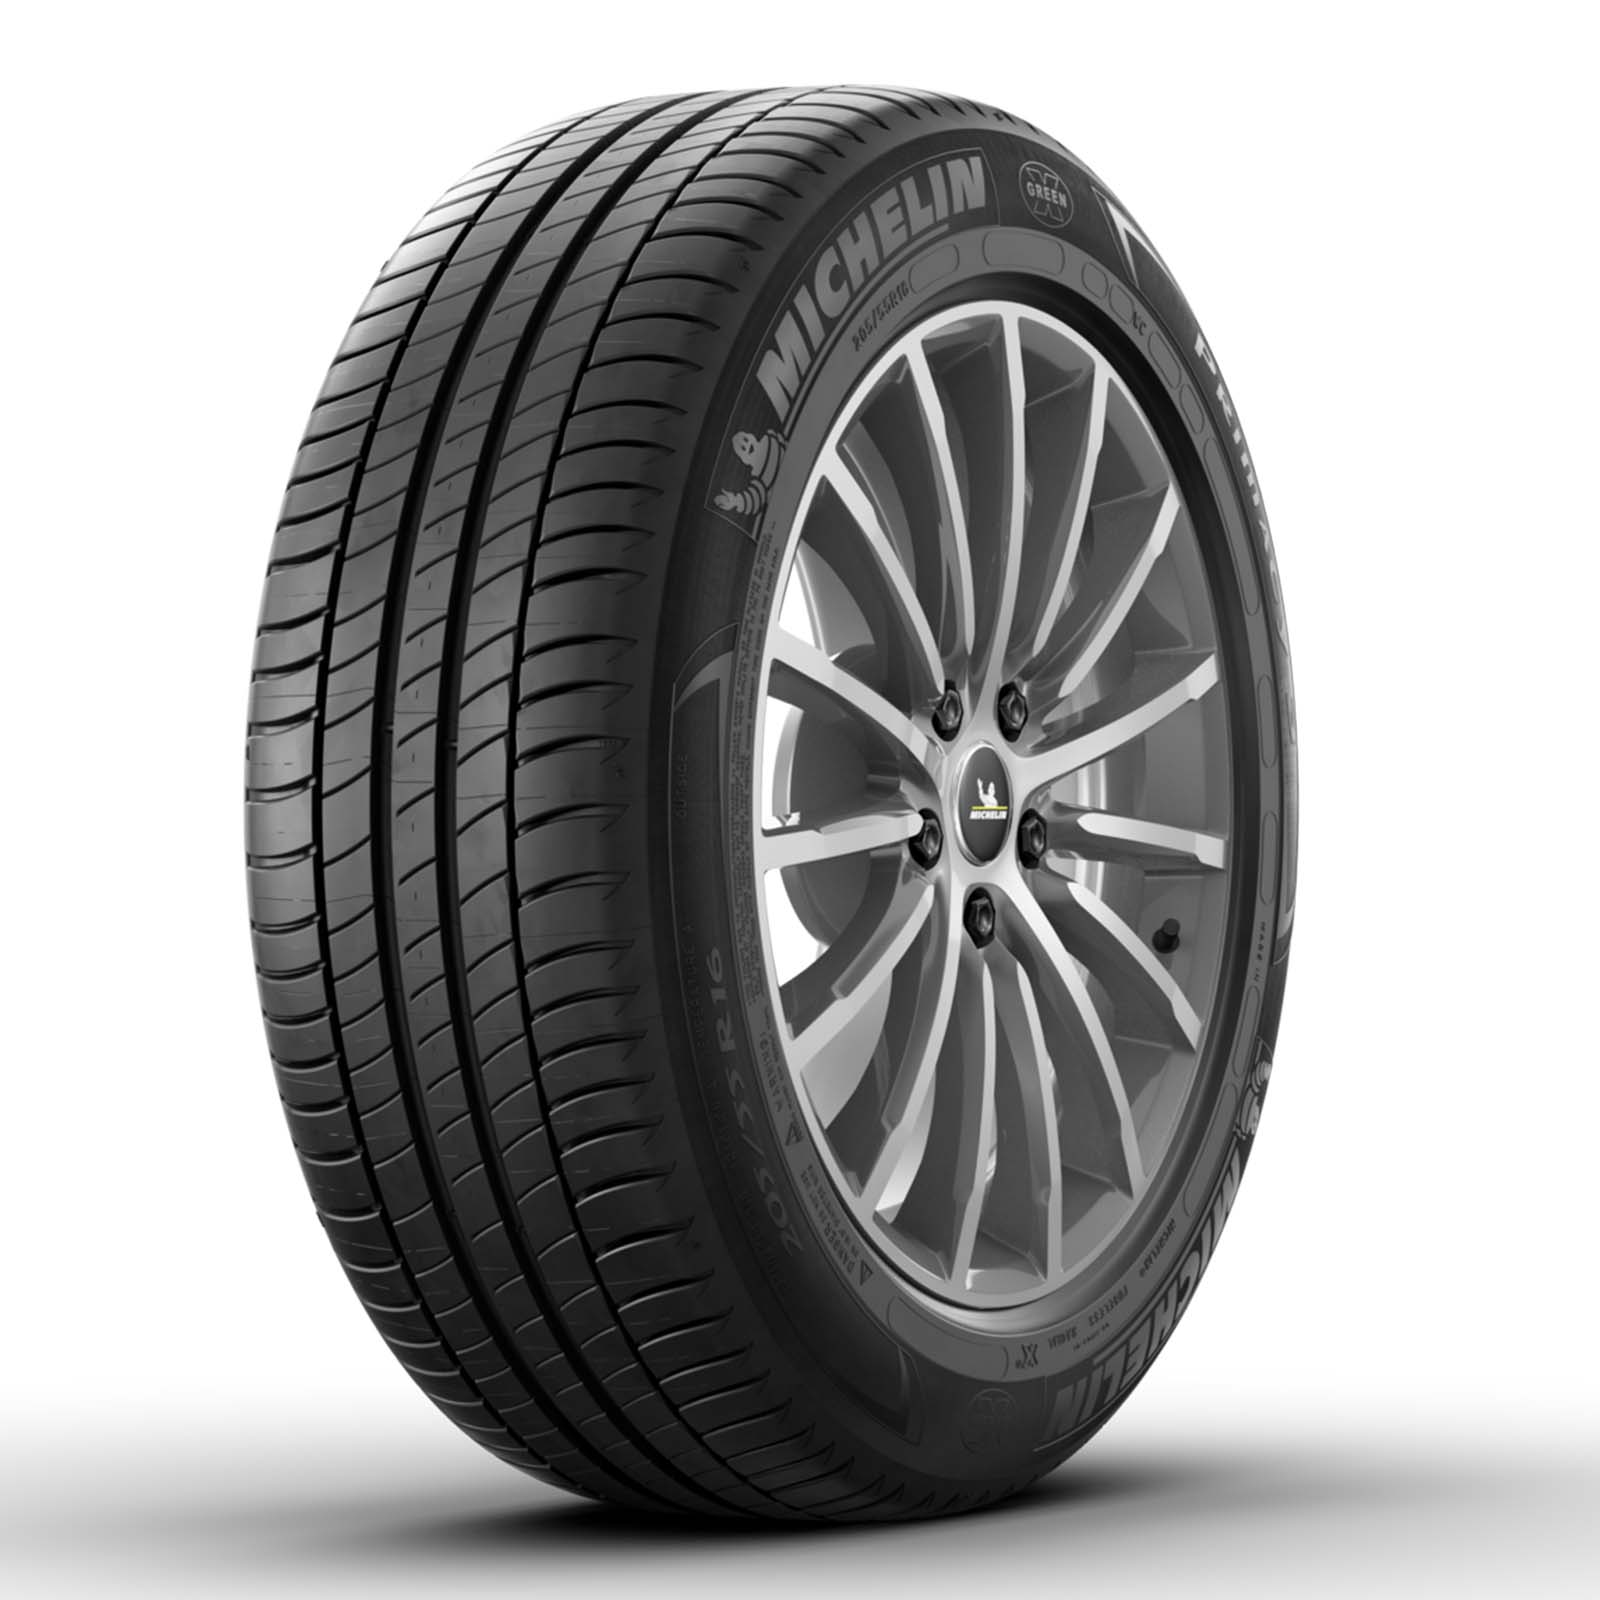 Michelin Primacy 3ZP 205/55 R 16  91 W Run Flat Car Tyre